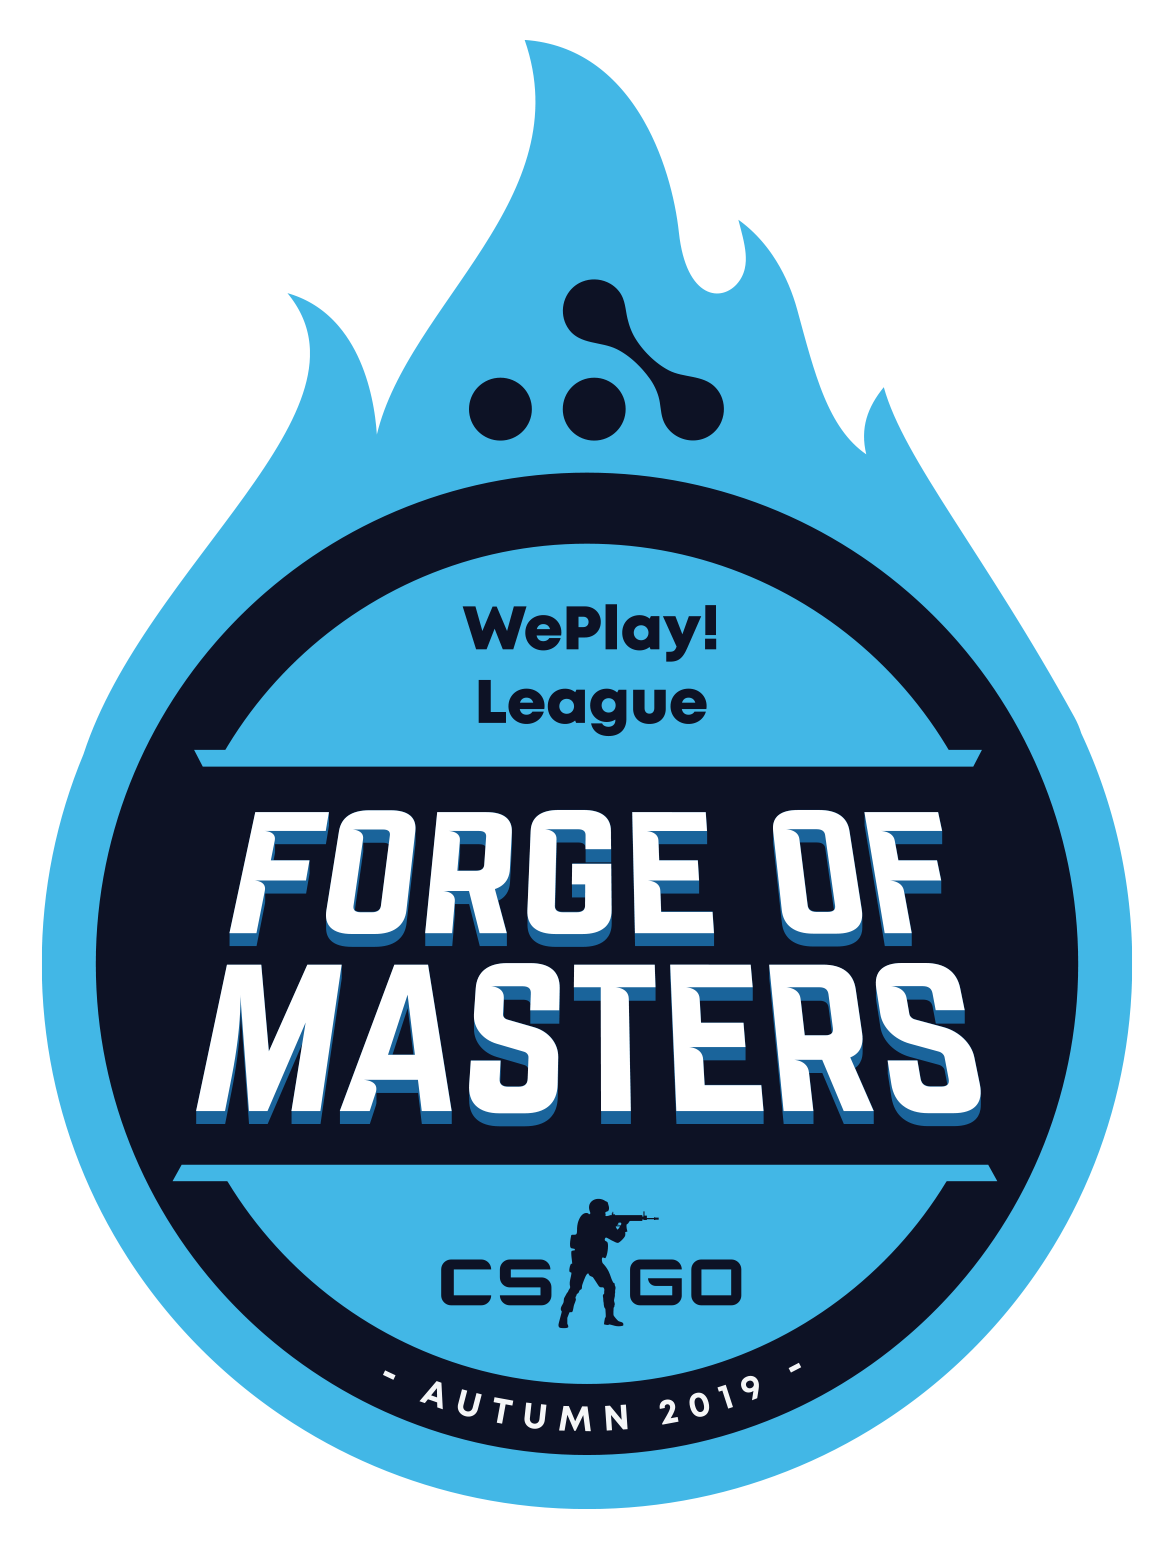 Forge of Masters CS:GO Series